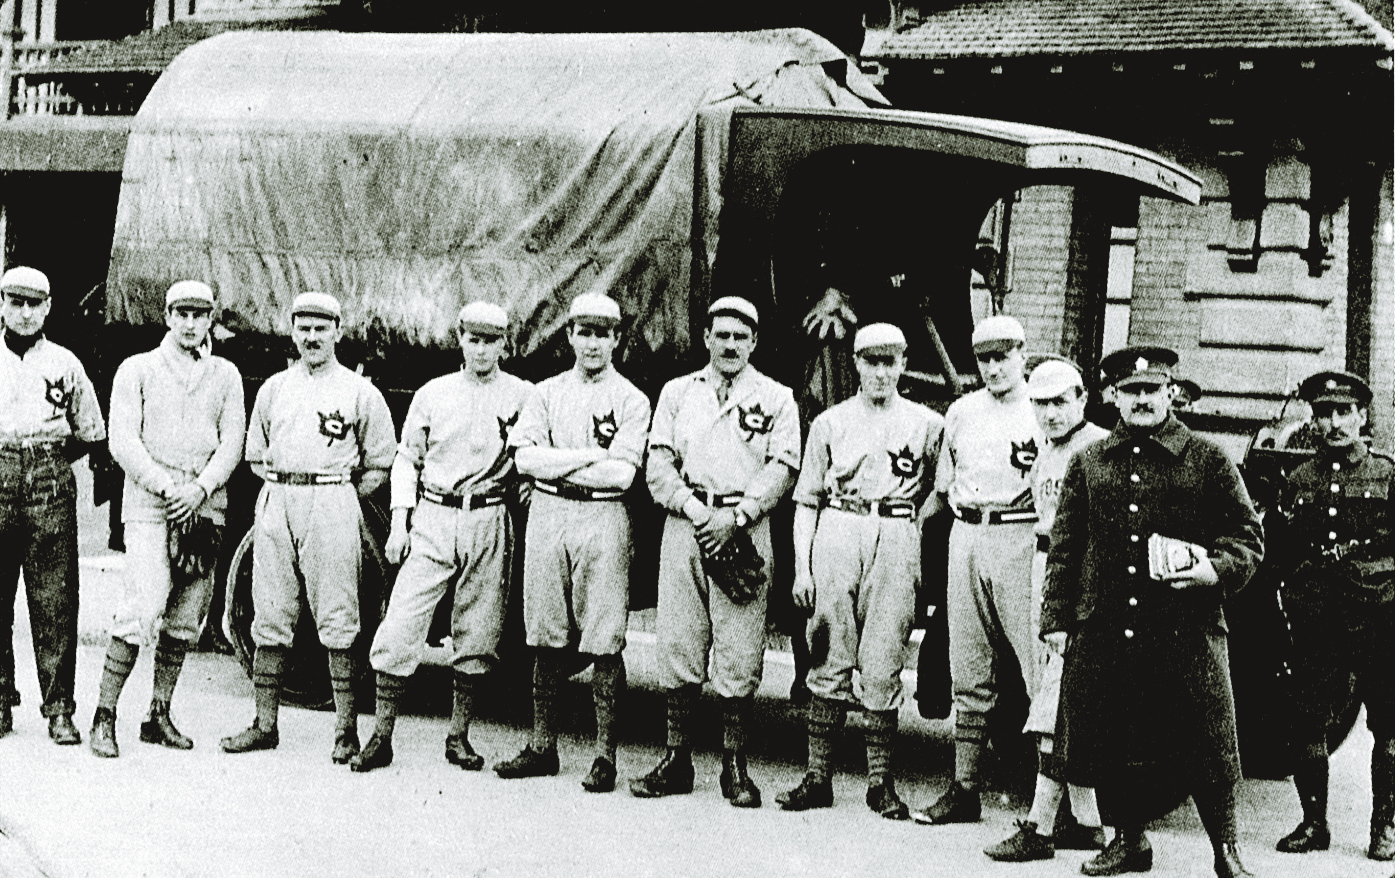 Sports were just as important at war as back home. To provide entertainment for the troops, matches were organized between teams and countries. Baseball teams played behind the lines and in Britain during the Great War, as did soccer teams. (Canadian War Museum, 19770477-011)